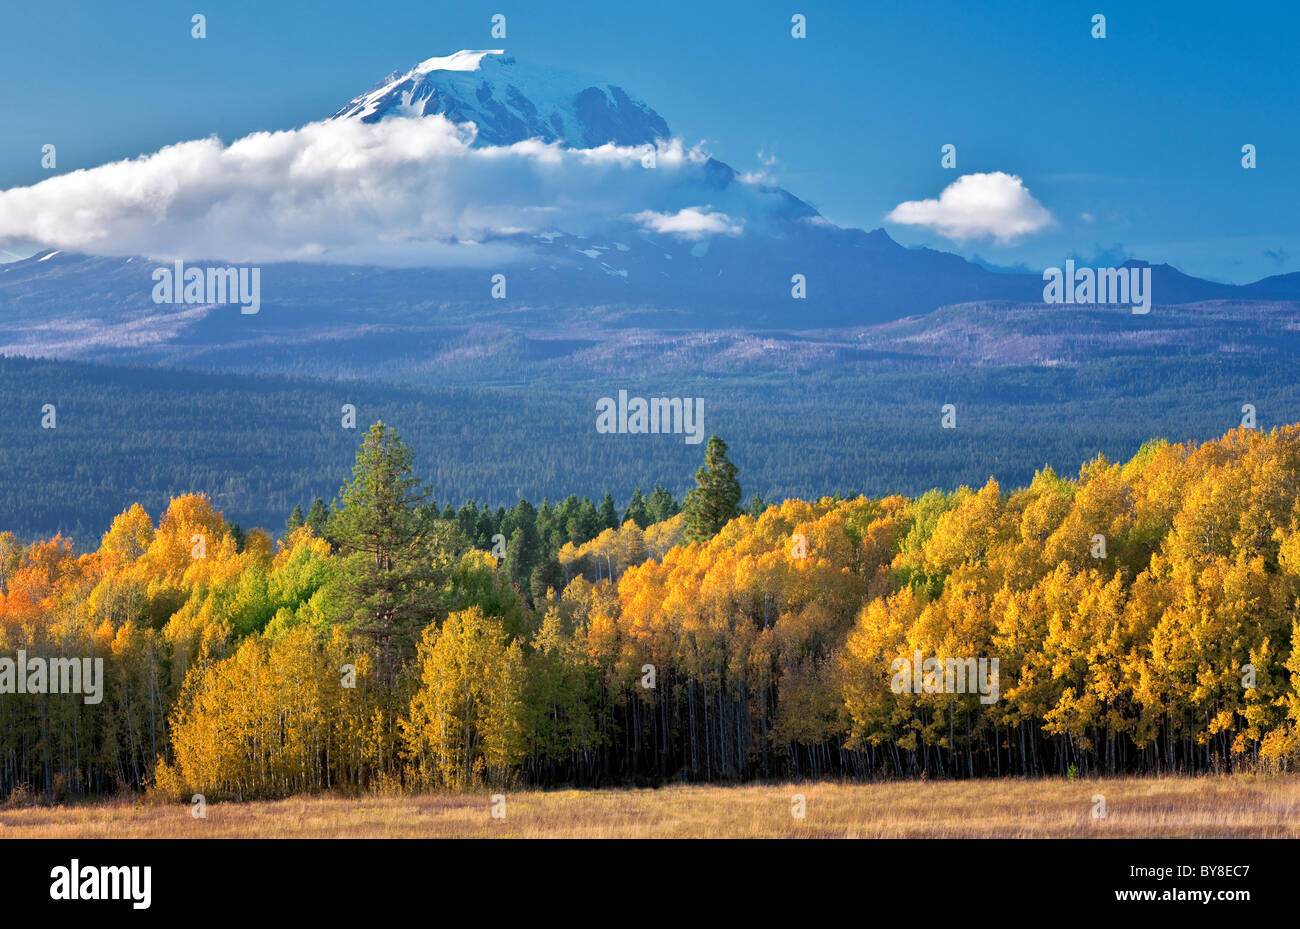 Mt. Adams with fall colored aspens as seen from Conboy Lake National Wildlife Refuge, Washington - Stock Image